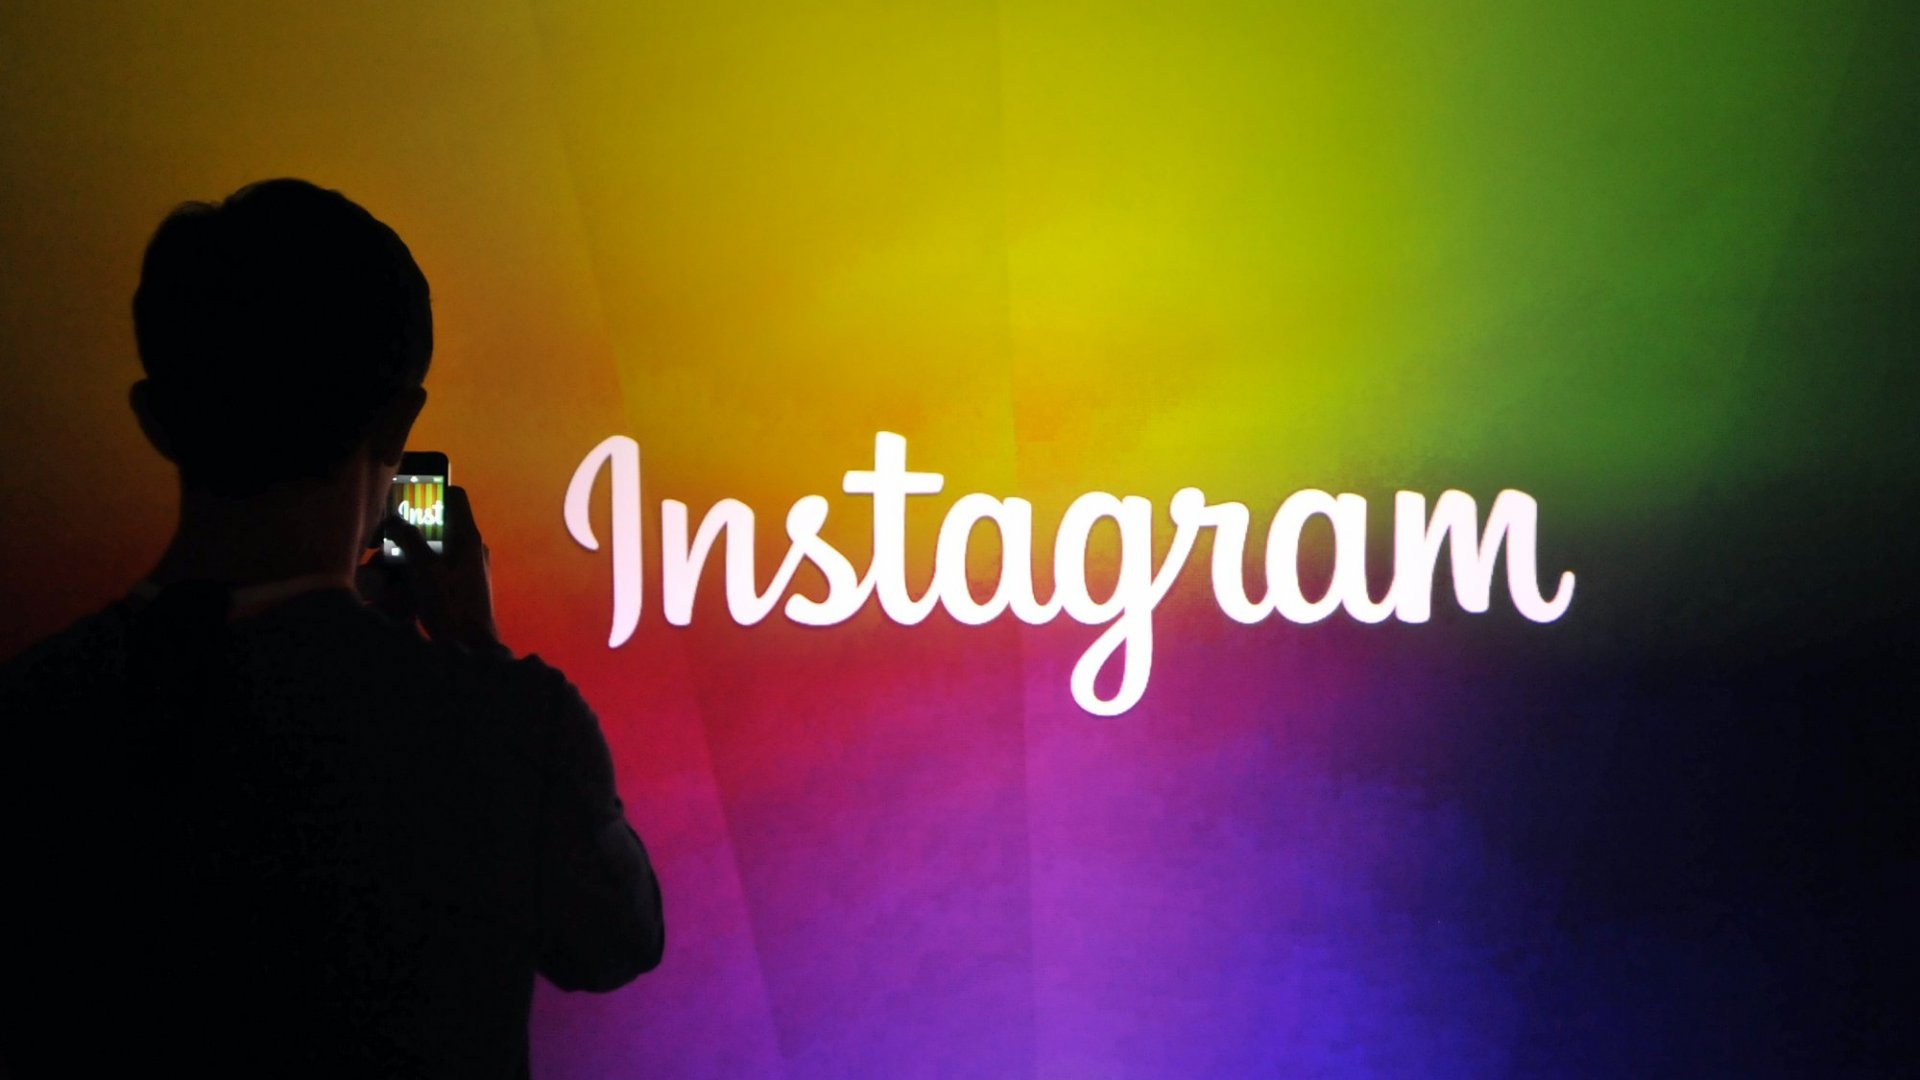 Instagram Allowed an Ad Partner to Track Millions of Users' Data, and It's a Major Privacy Problem